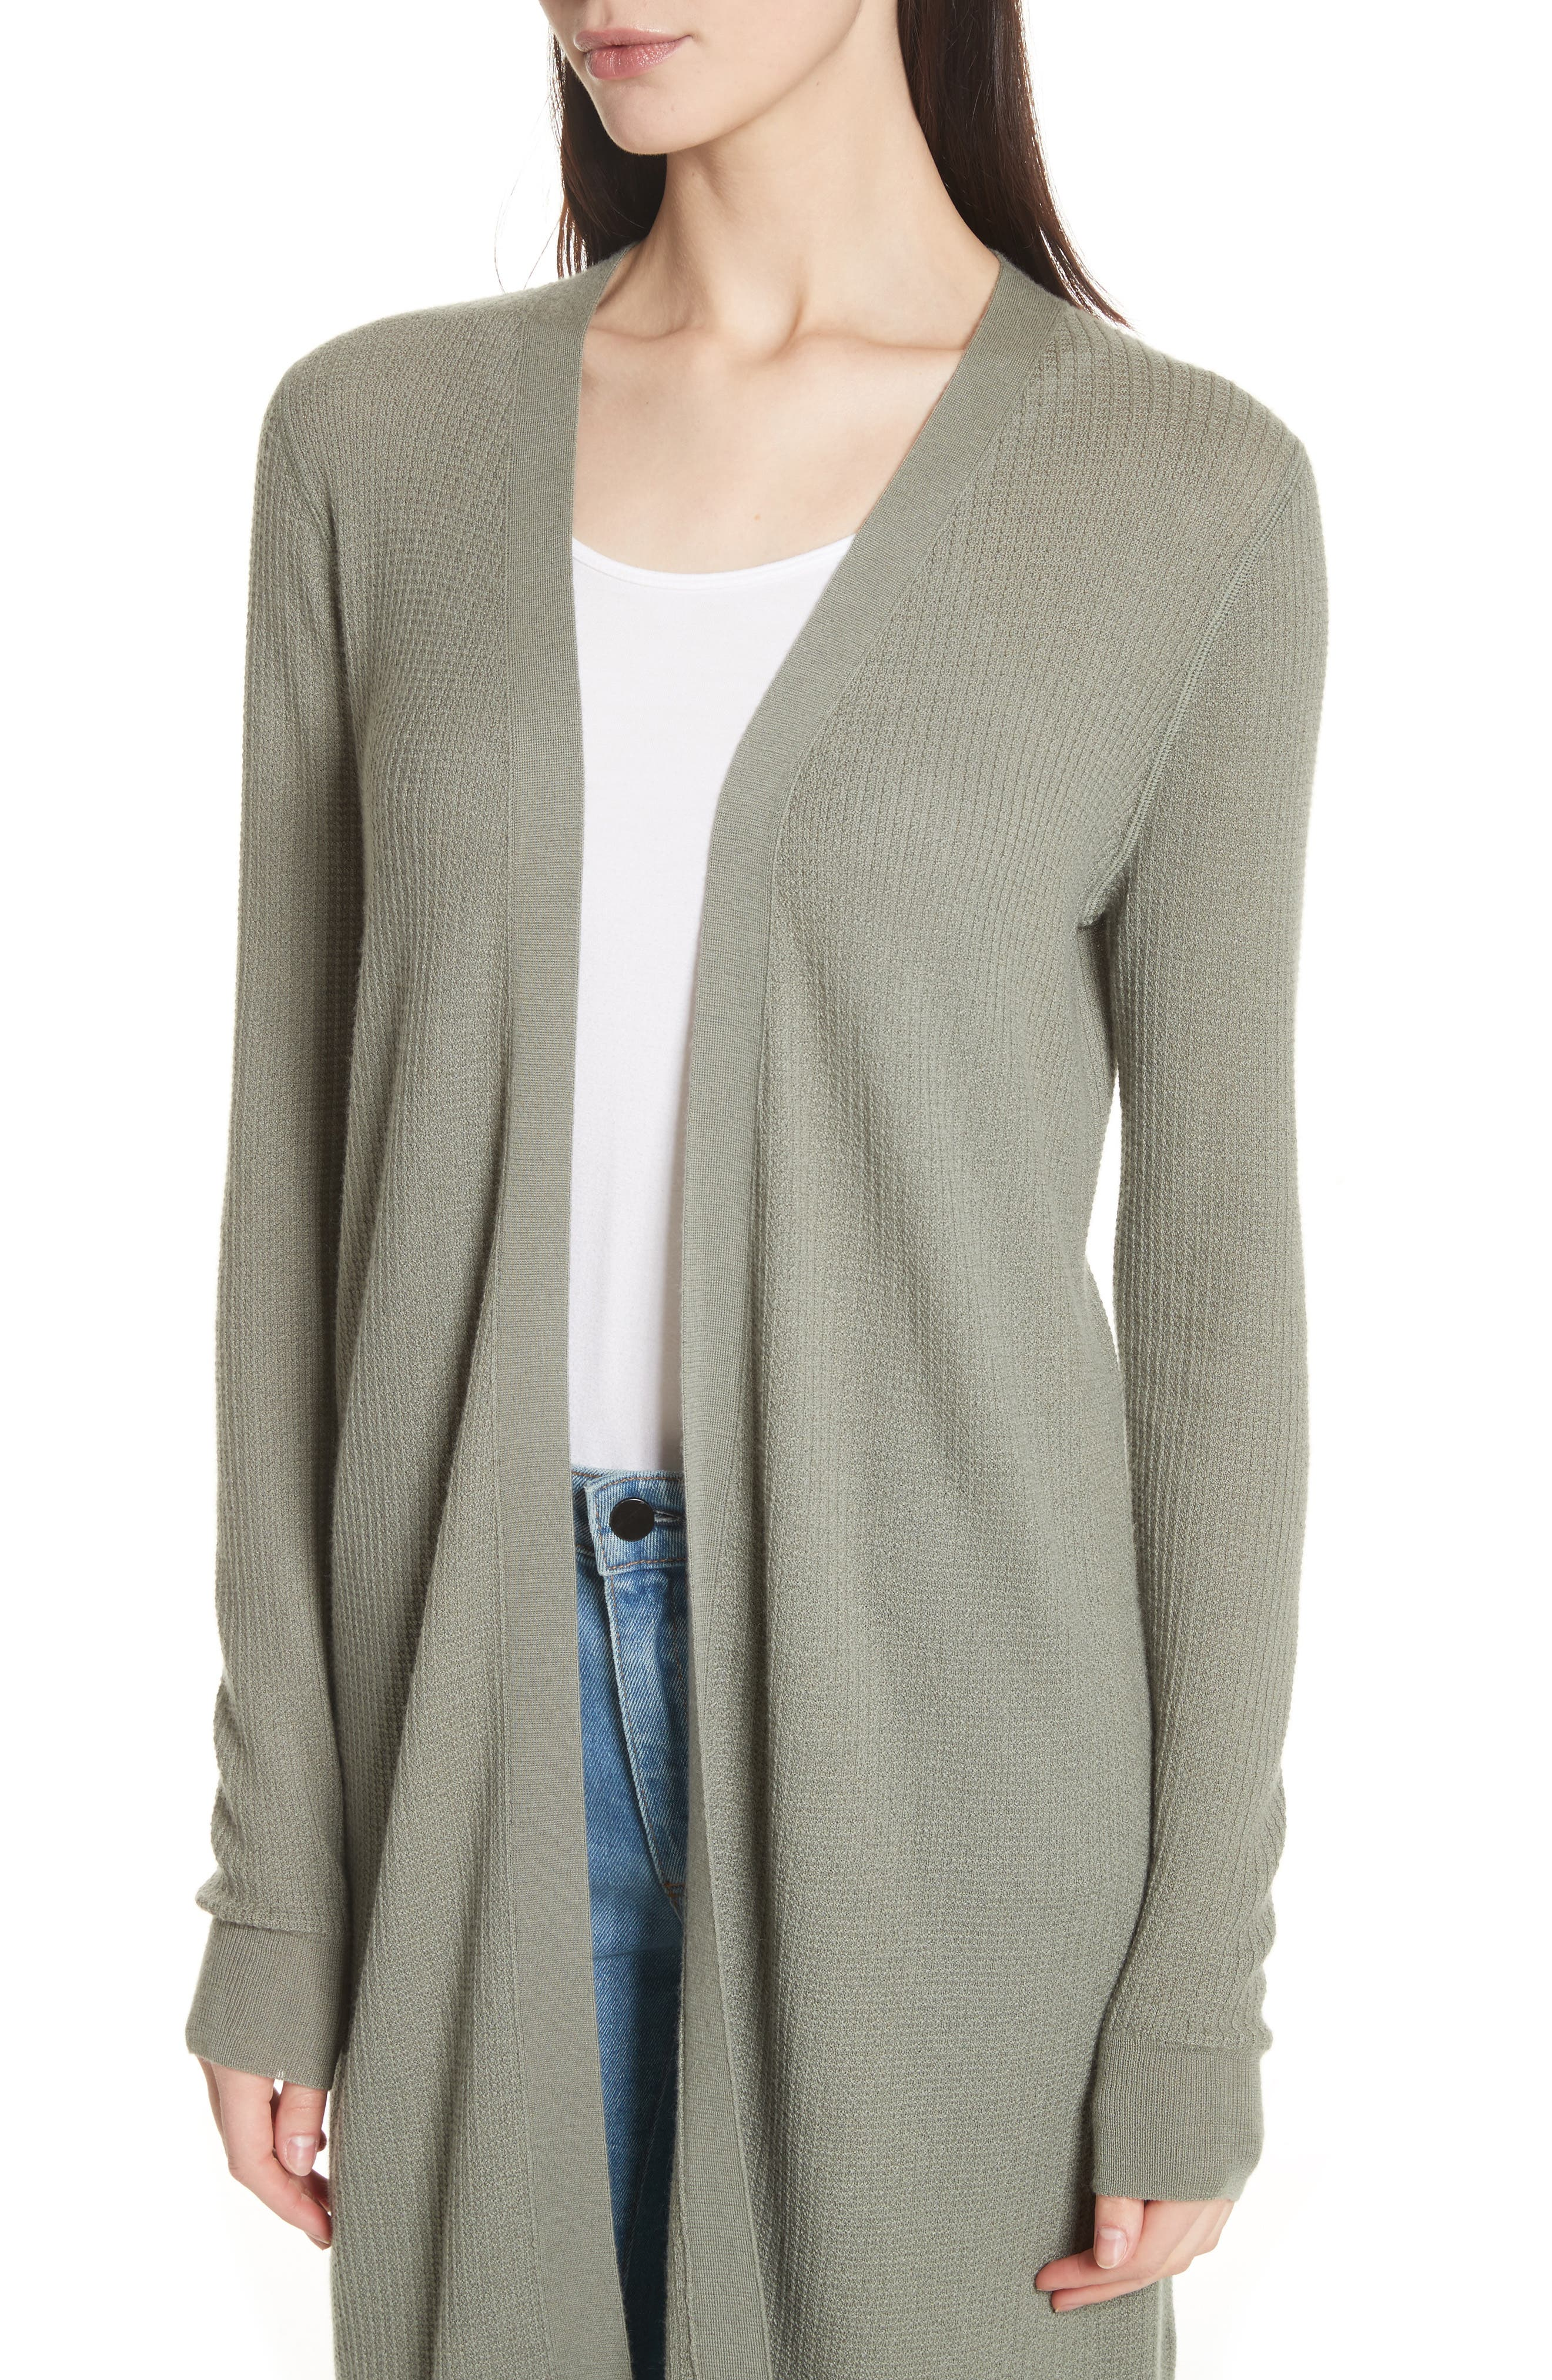 Torina Long Cashmere Cardigan,                             Alternate thumbnail 4, color,                             Faded Army